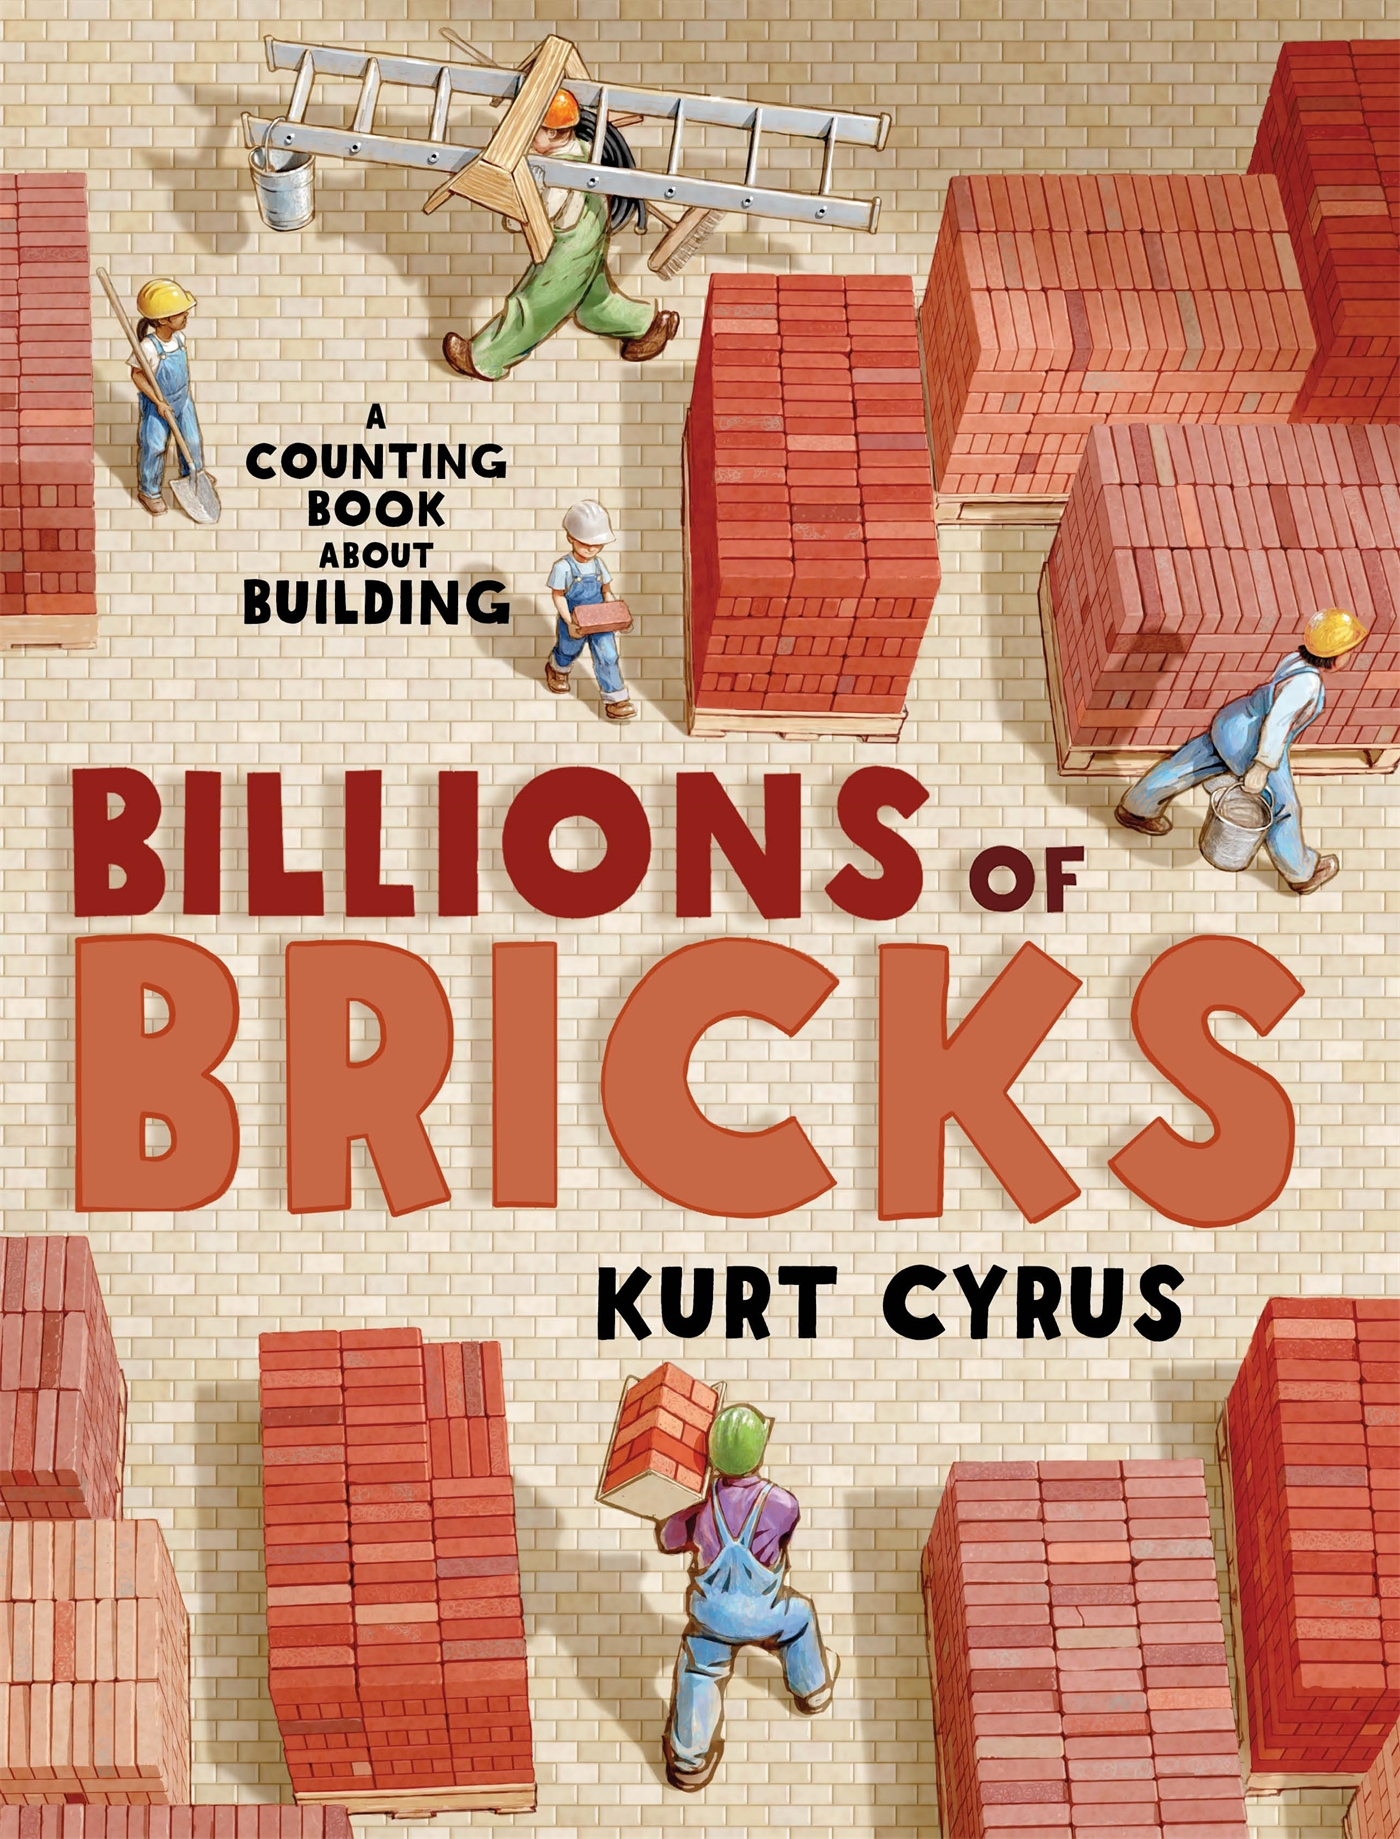 Billions of bricks